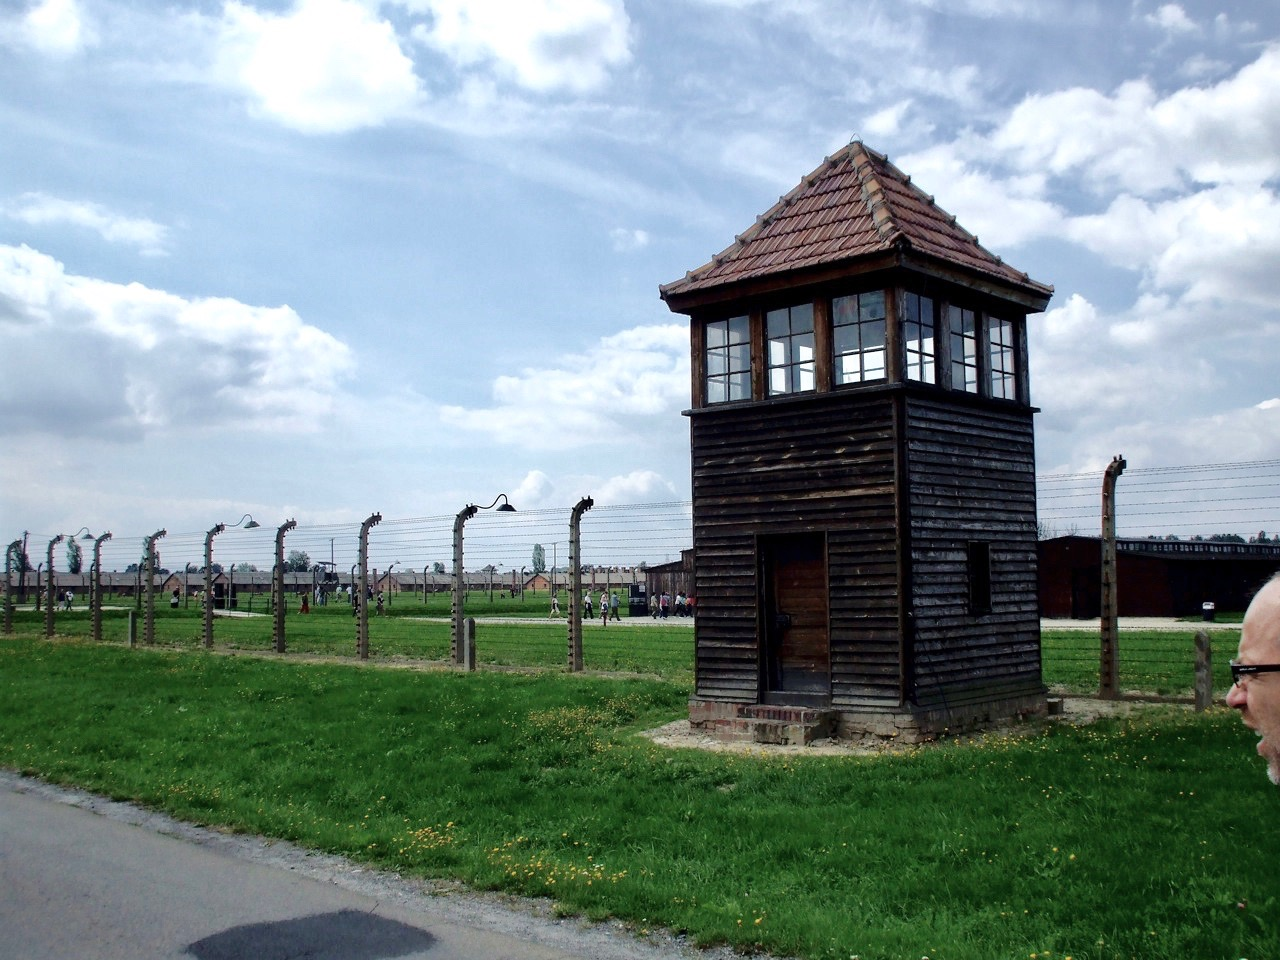 A guard tower at Birkenau, part of the former German Nazi Concentration and Extermination Camp at Auschwitz-Birkenau, in Oświęcim, Poland.